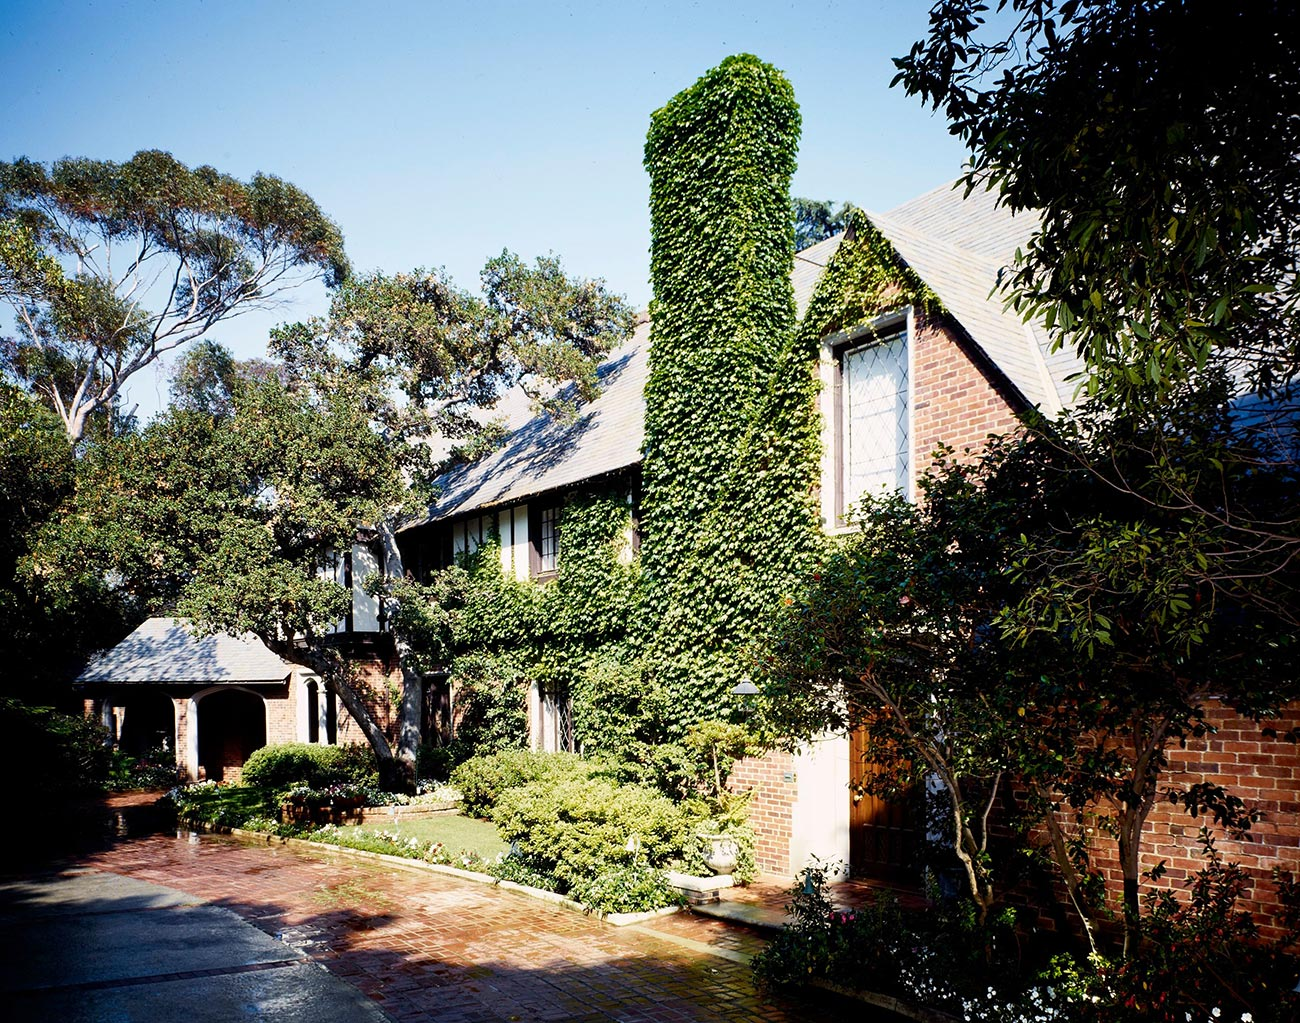 Two story red brick house covered in ivy, with a brick driveway